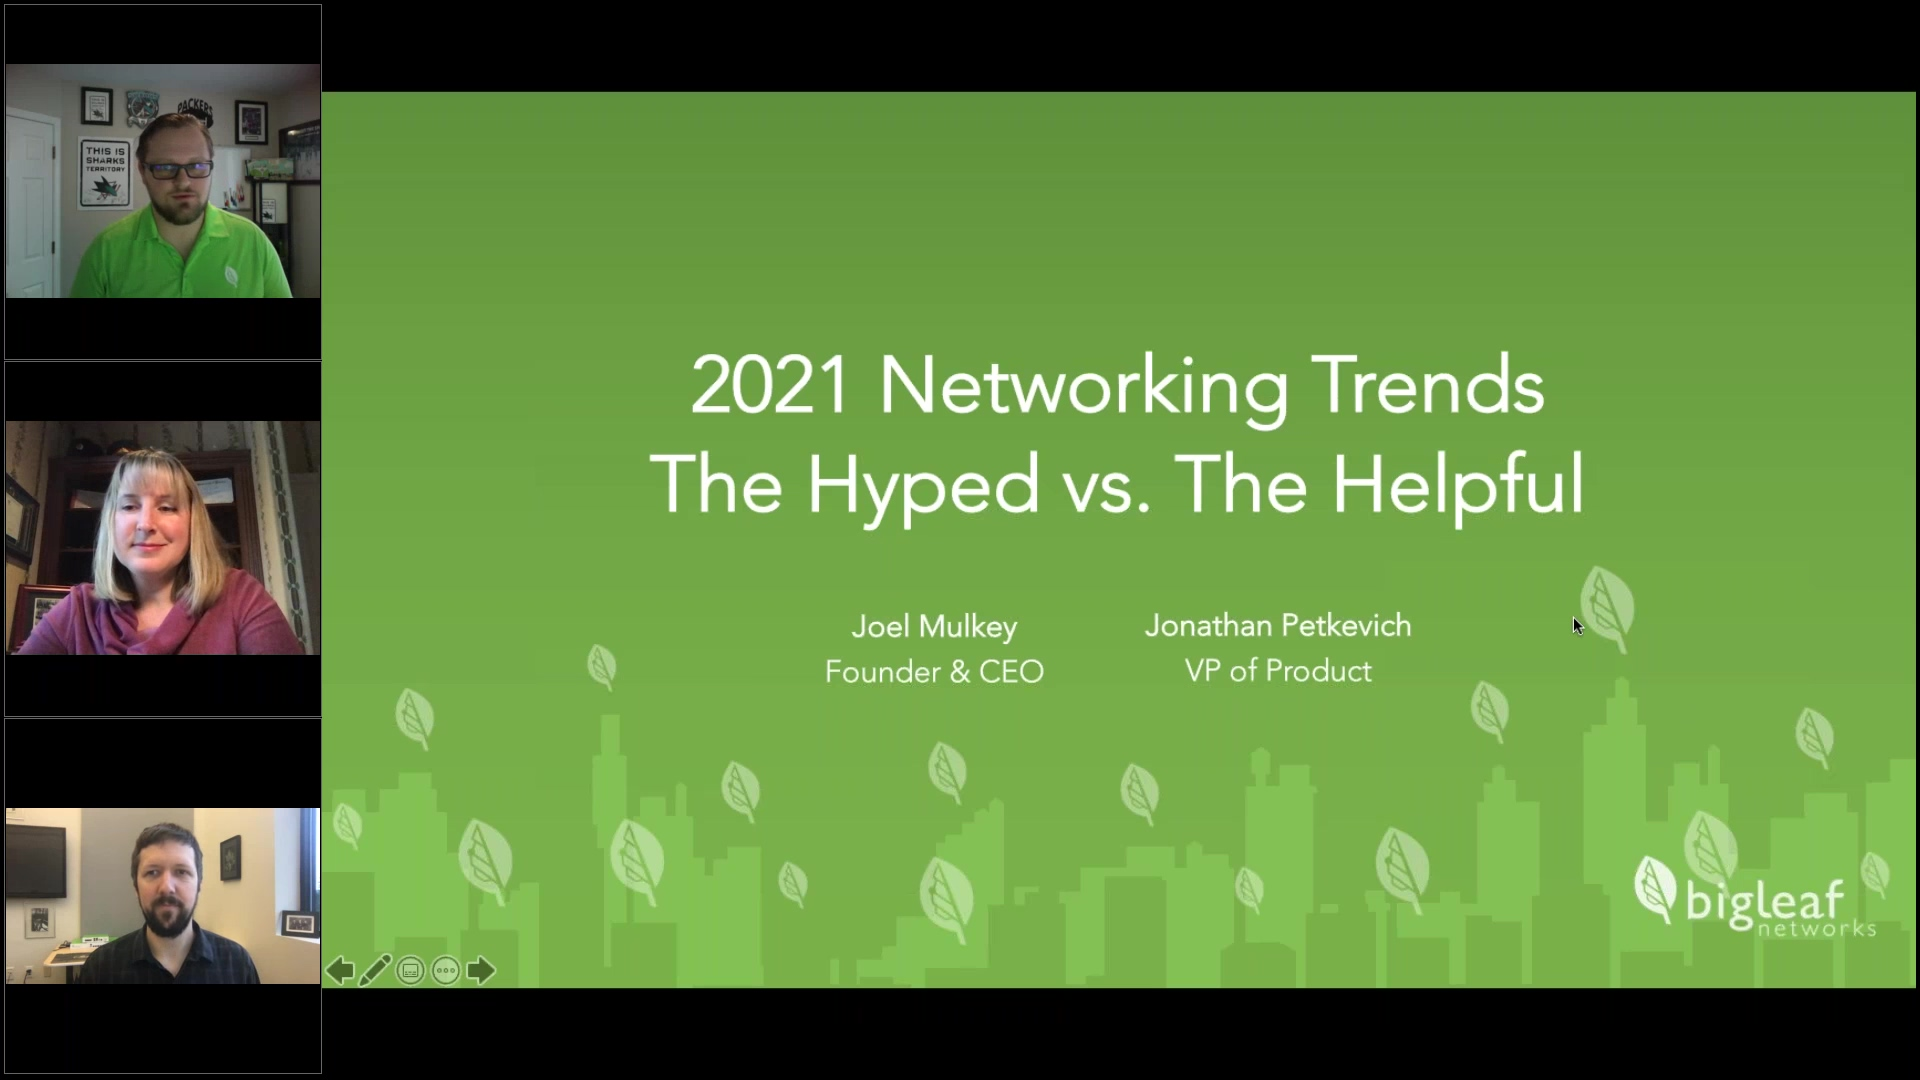 2021 Networking Trends